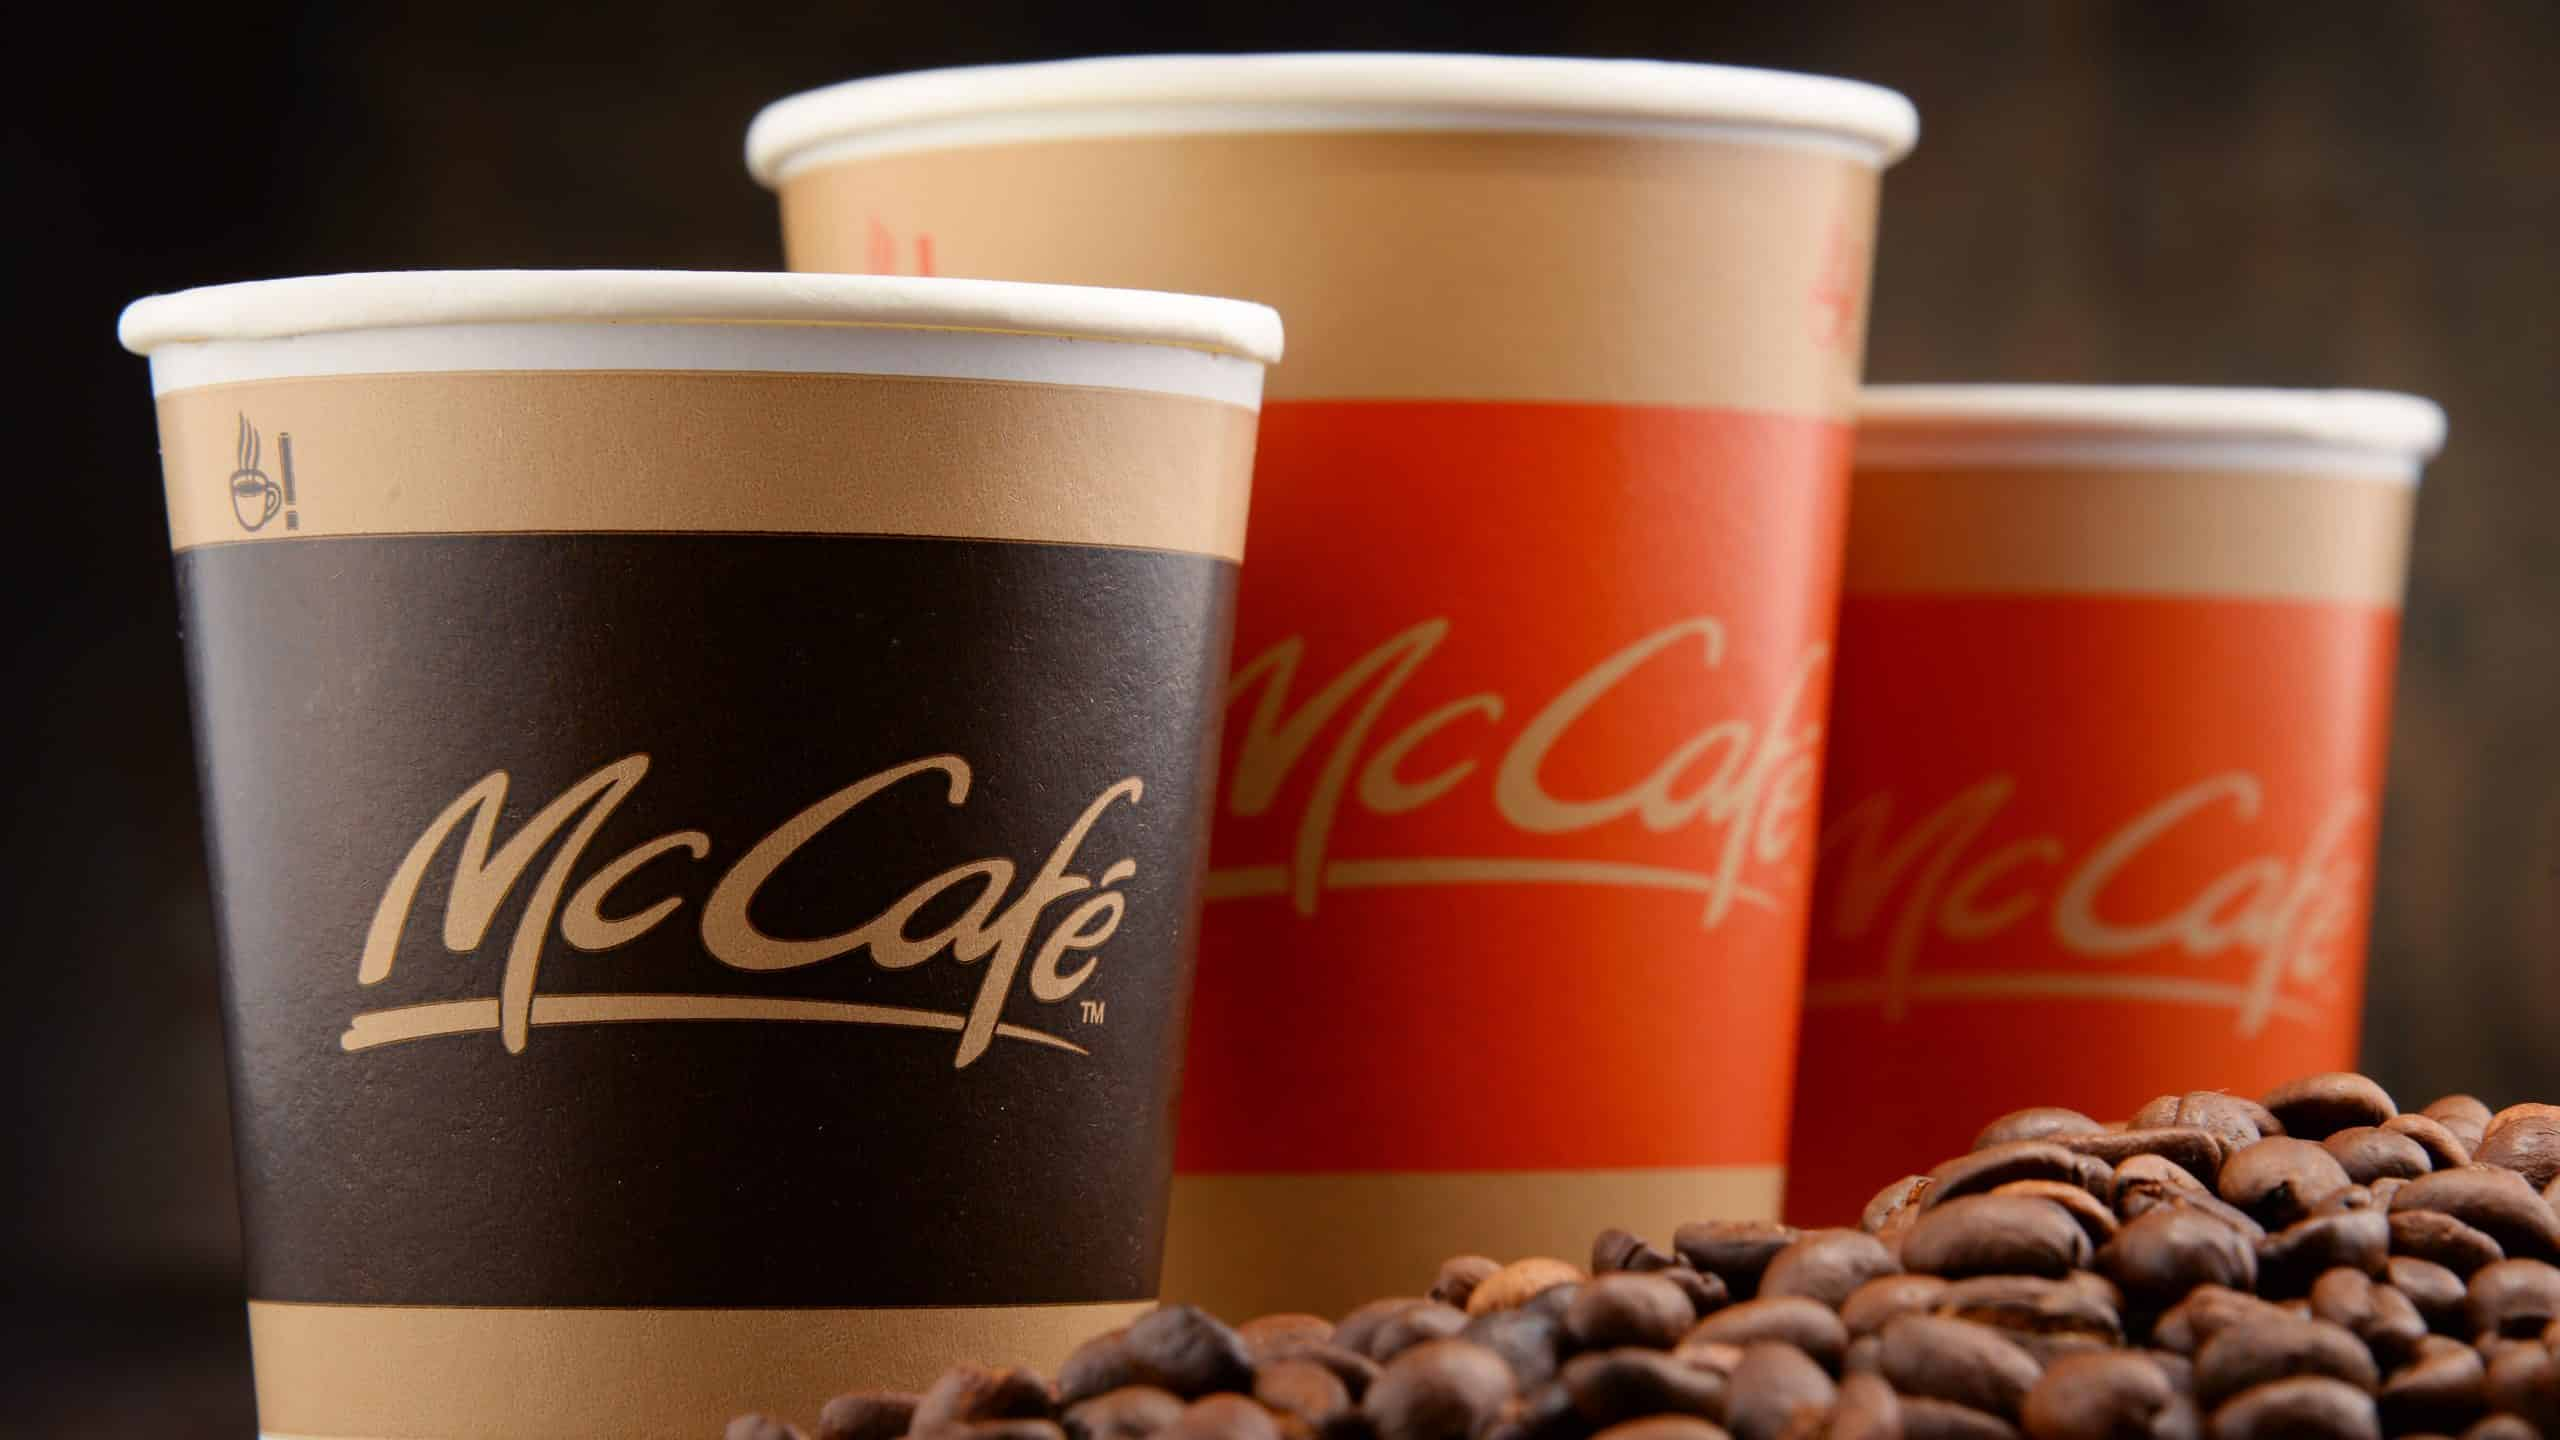 McDonald's coffee cup with vulgar message given to Kansas police officer: 'F—–g pig'